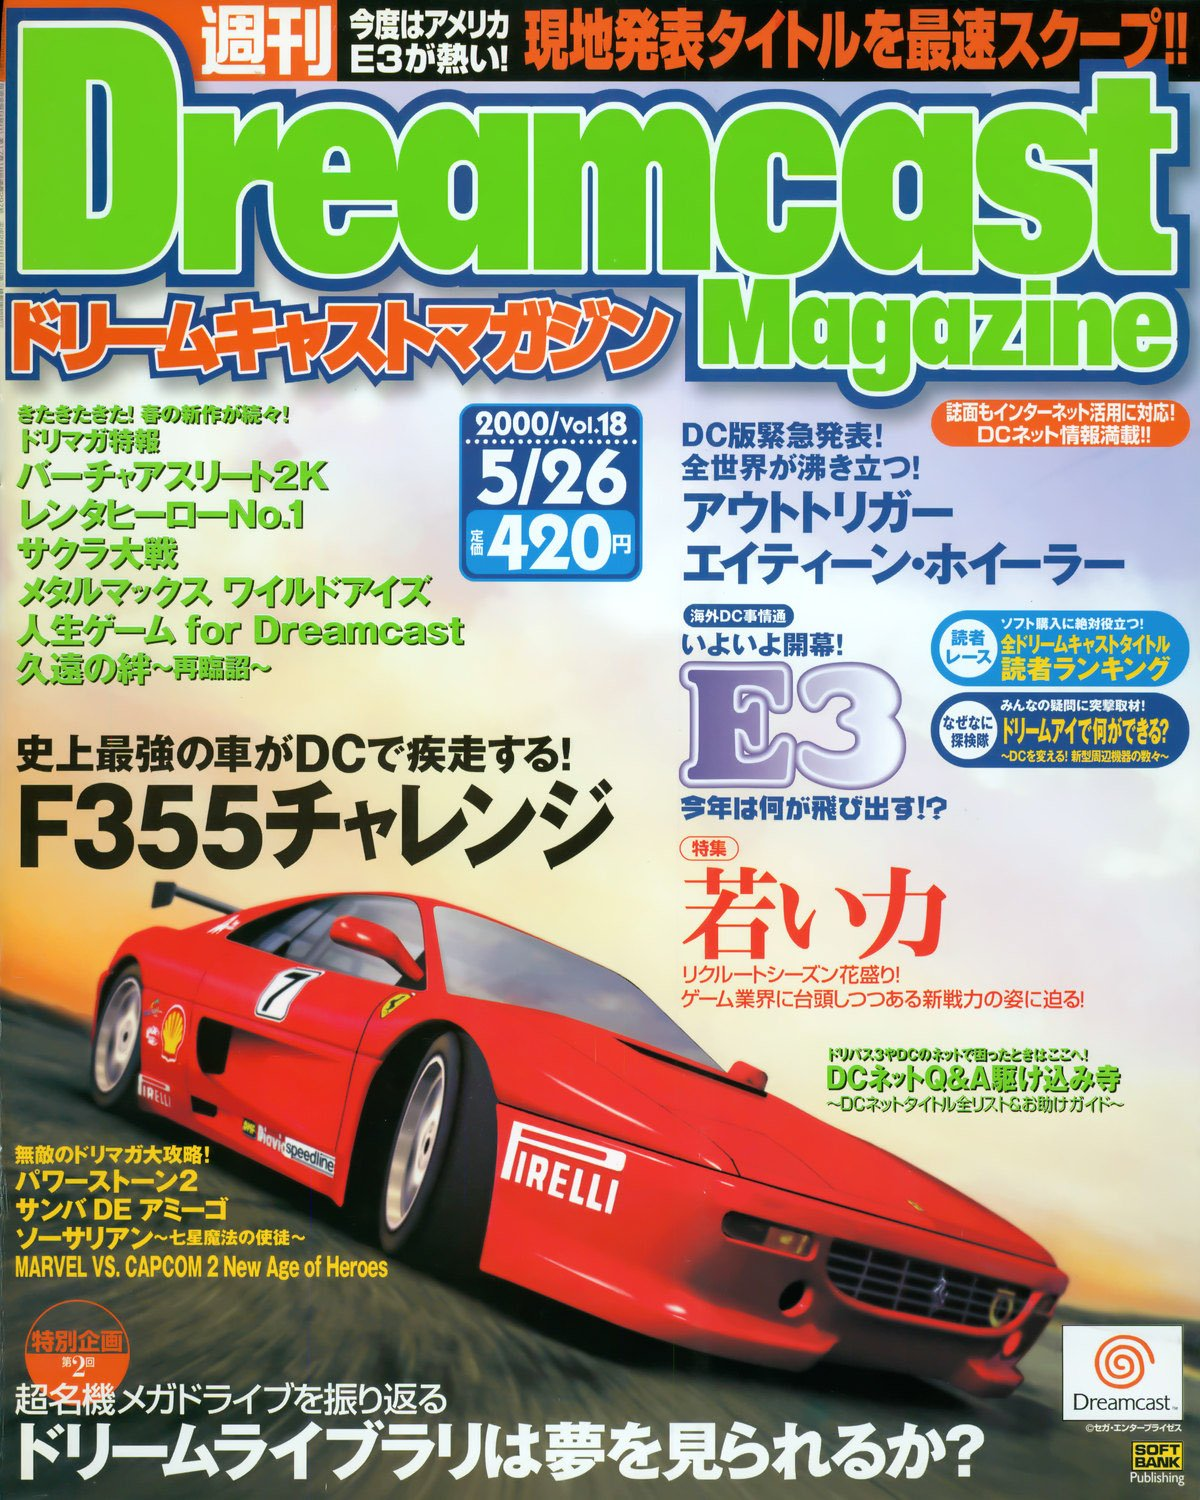 Dreamcast Magazine 070 (May 26, 2000)